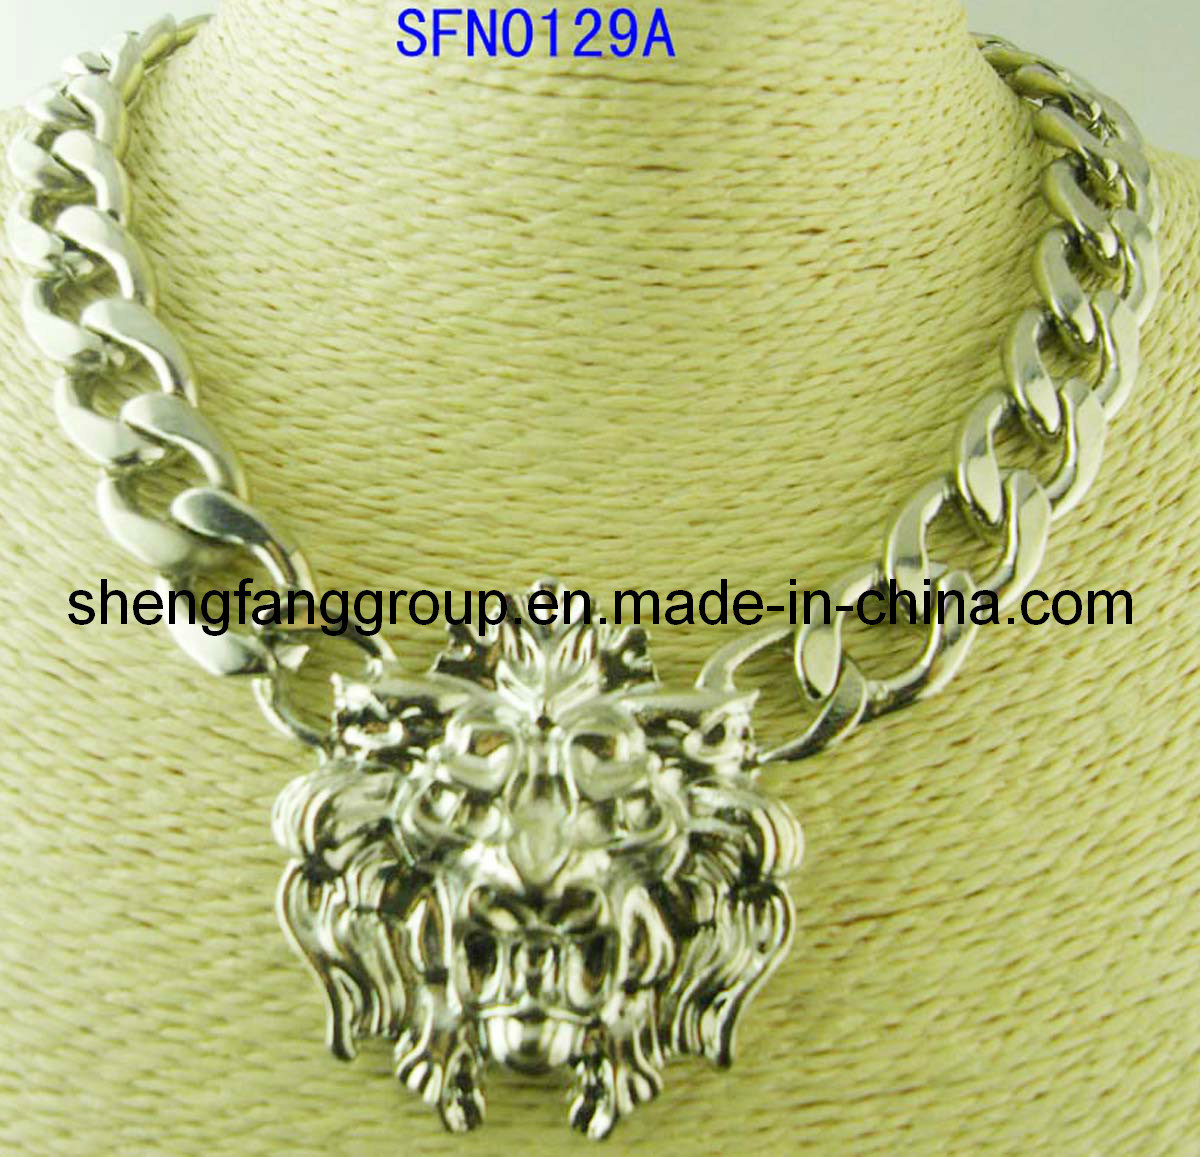 Fashion Jewelry Round Alloy with Lion Head Design Pendant Necklace (SFN0248A, SFN0129A)